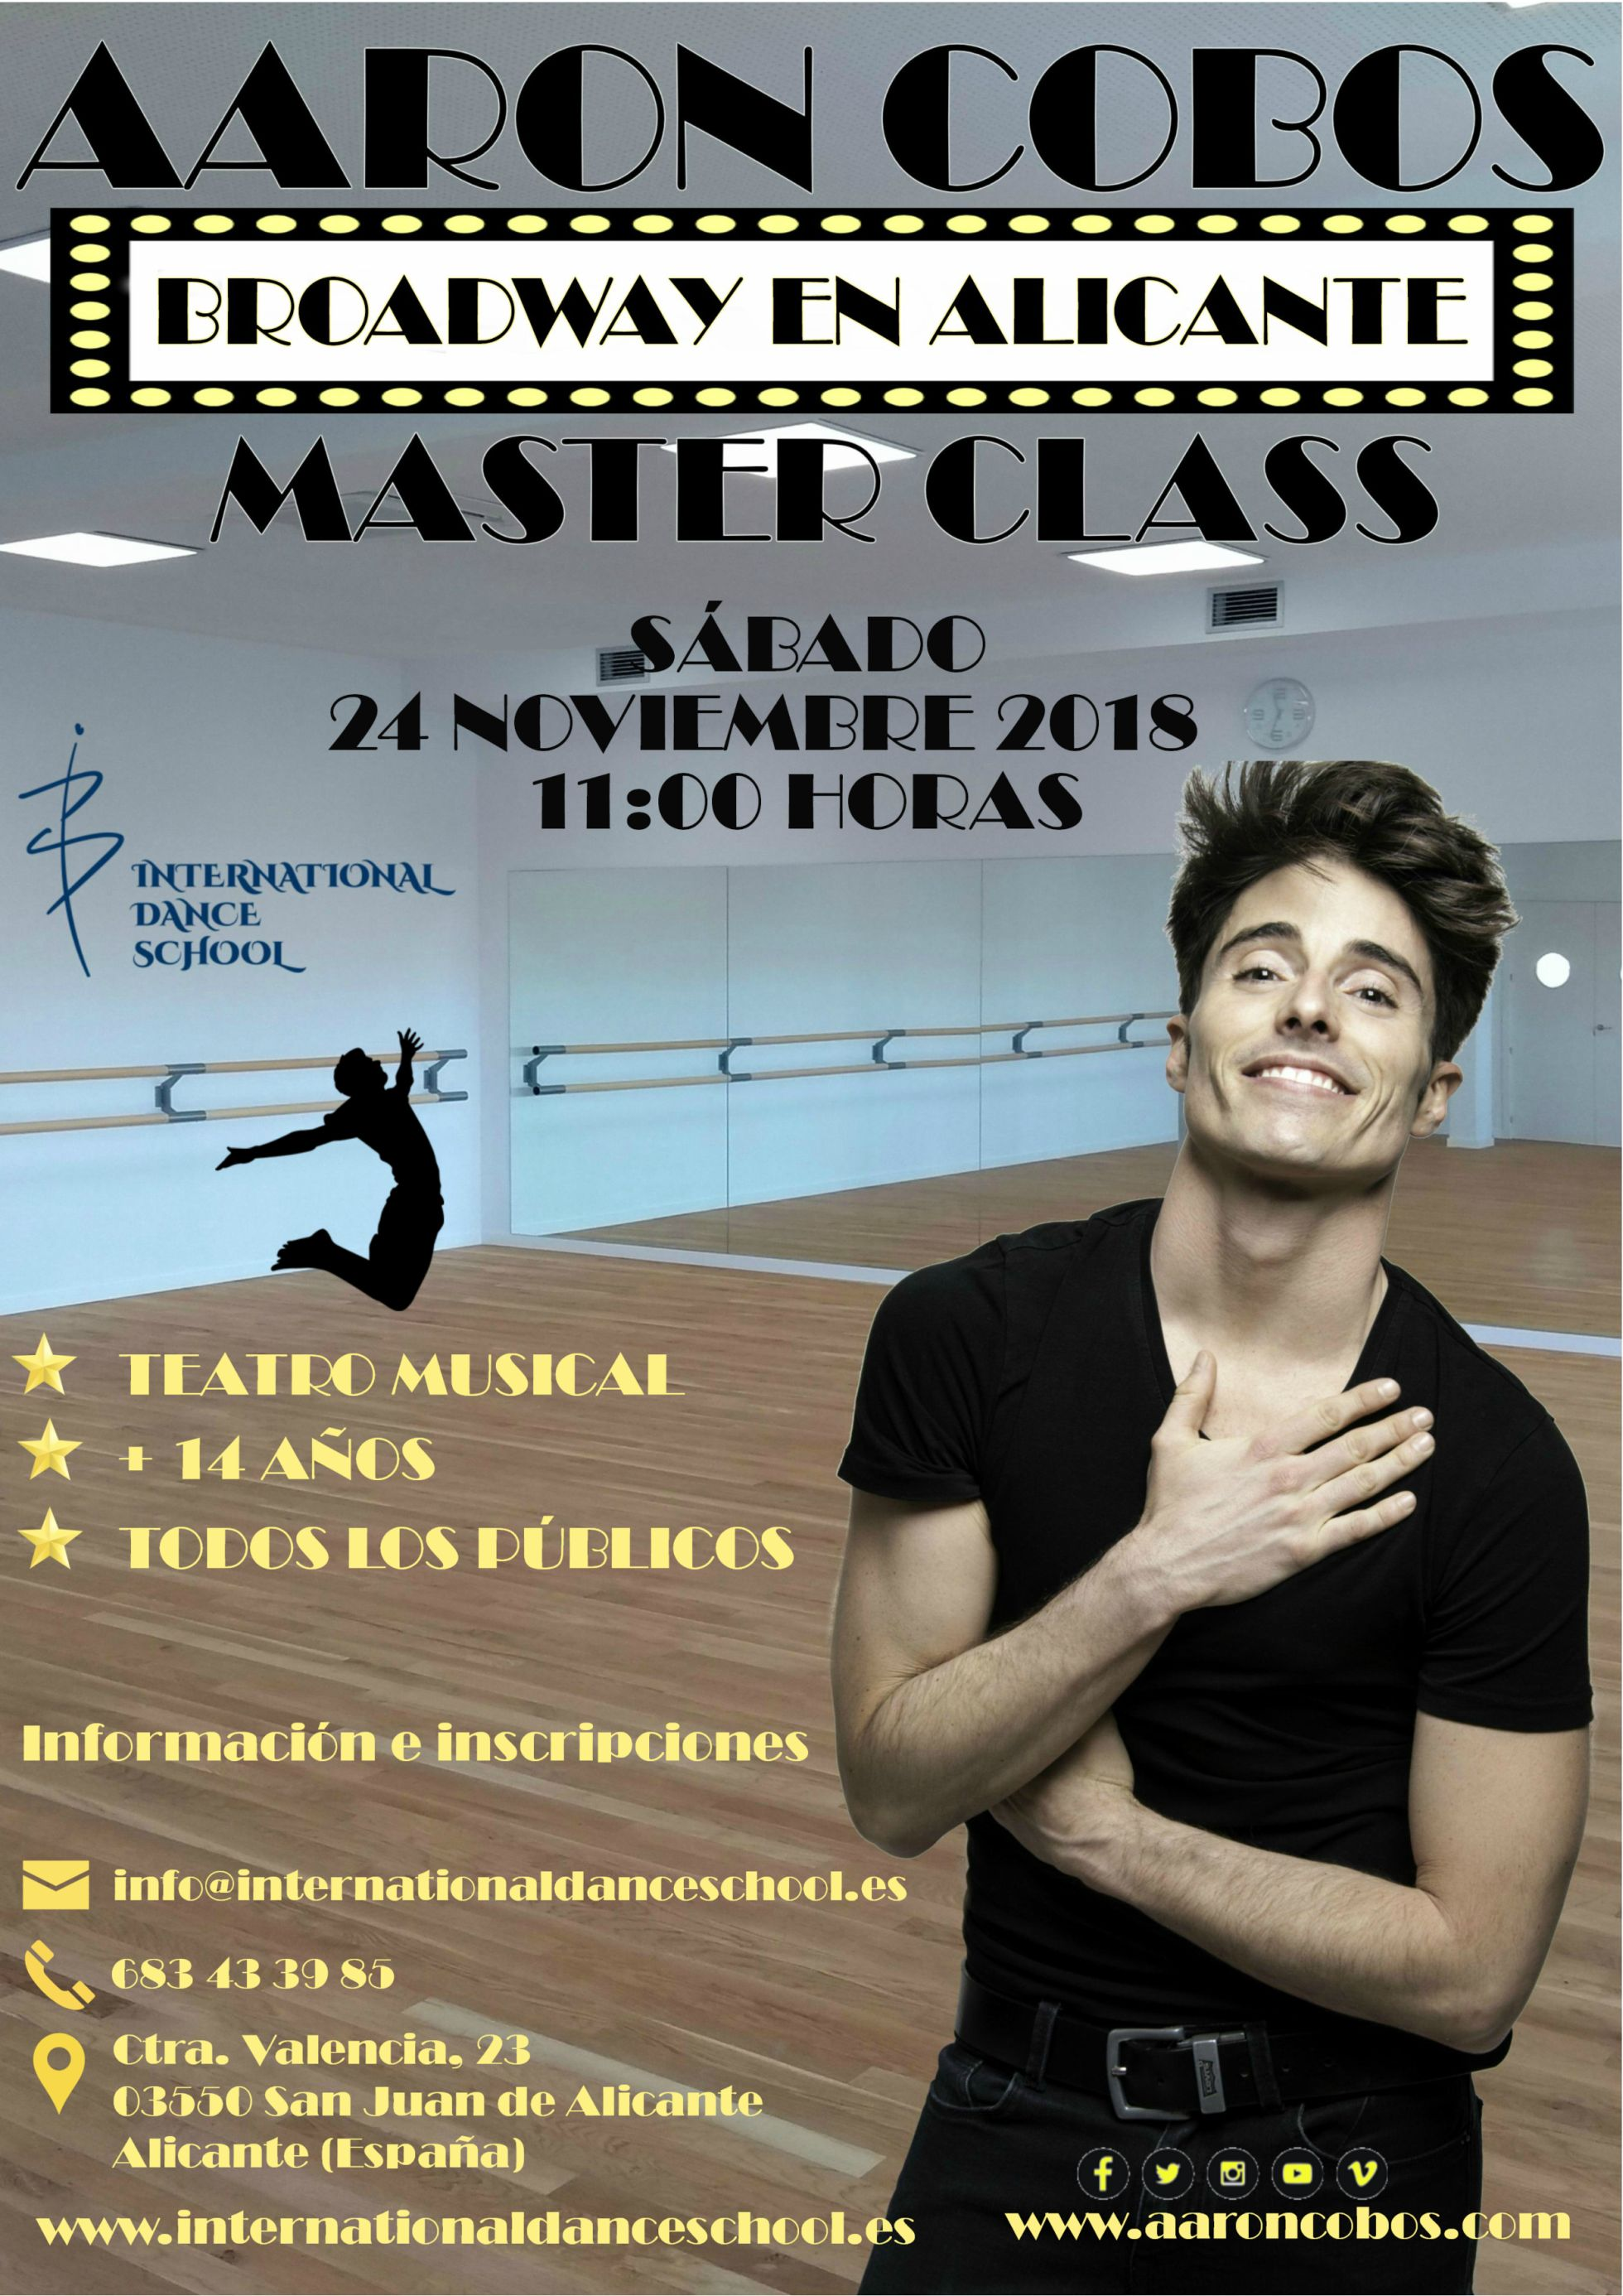 master class aaron cobos danza baile urban clásica española contemporánea teatro musical international dance school alicante cartel